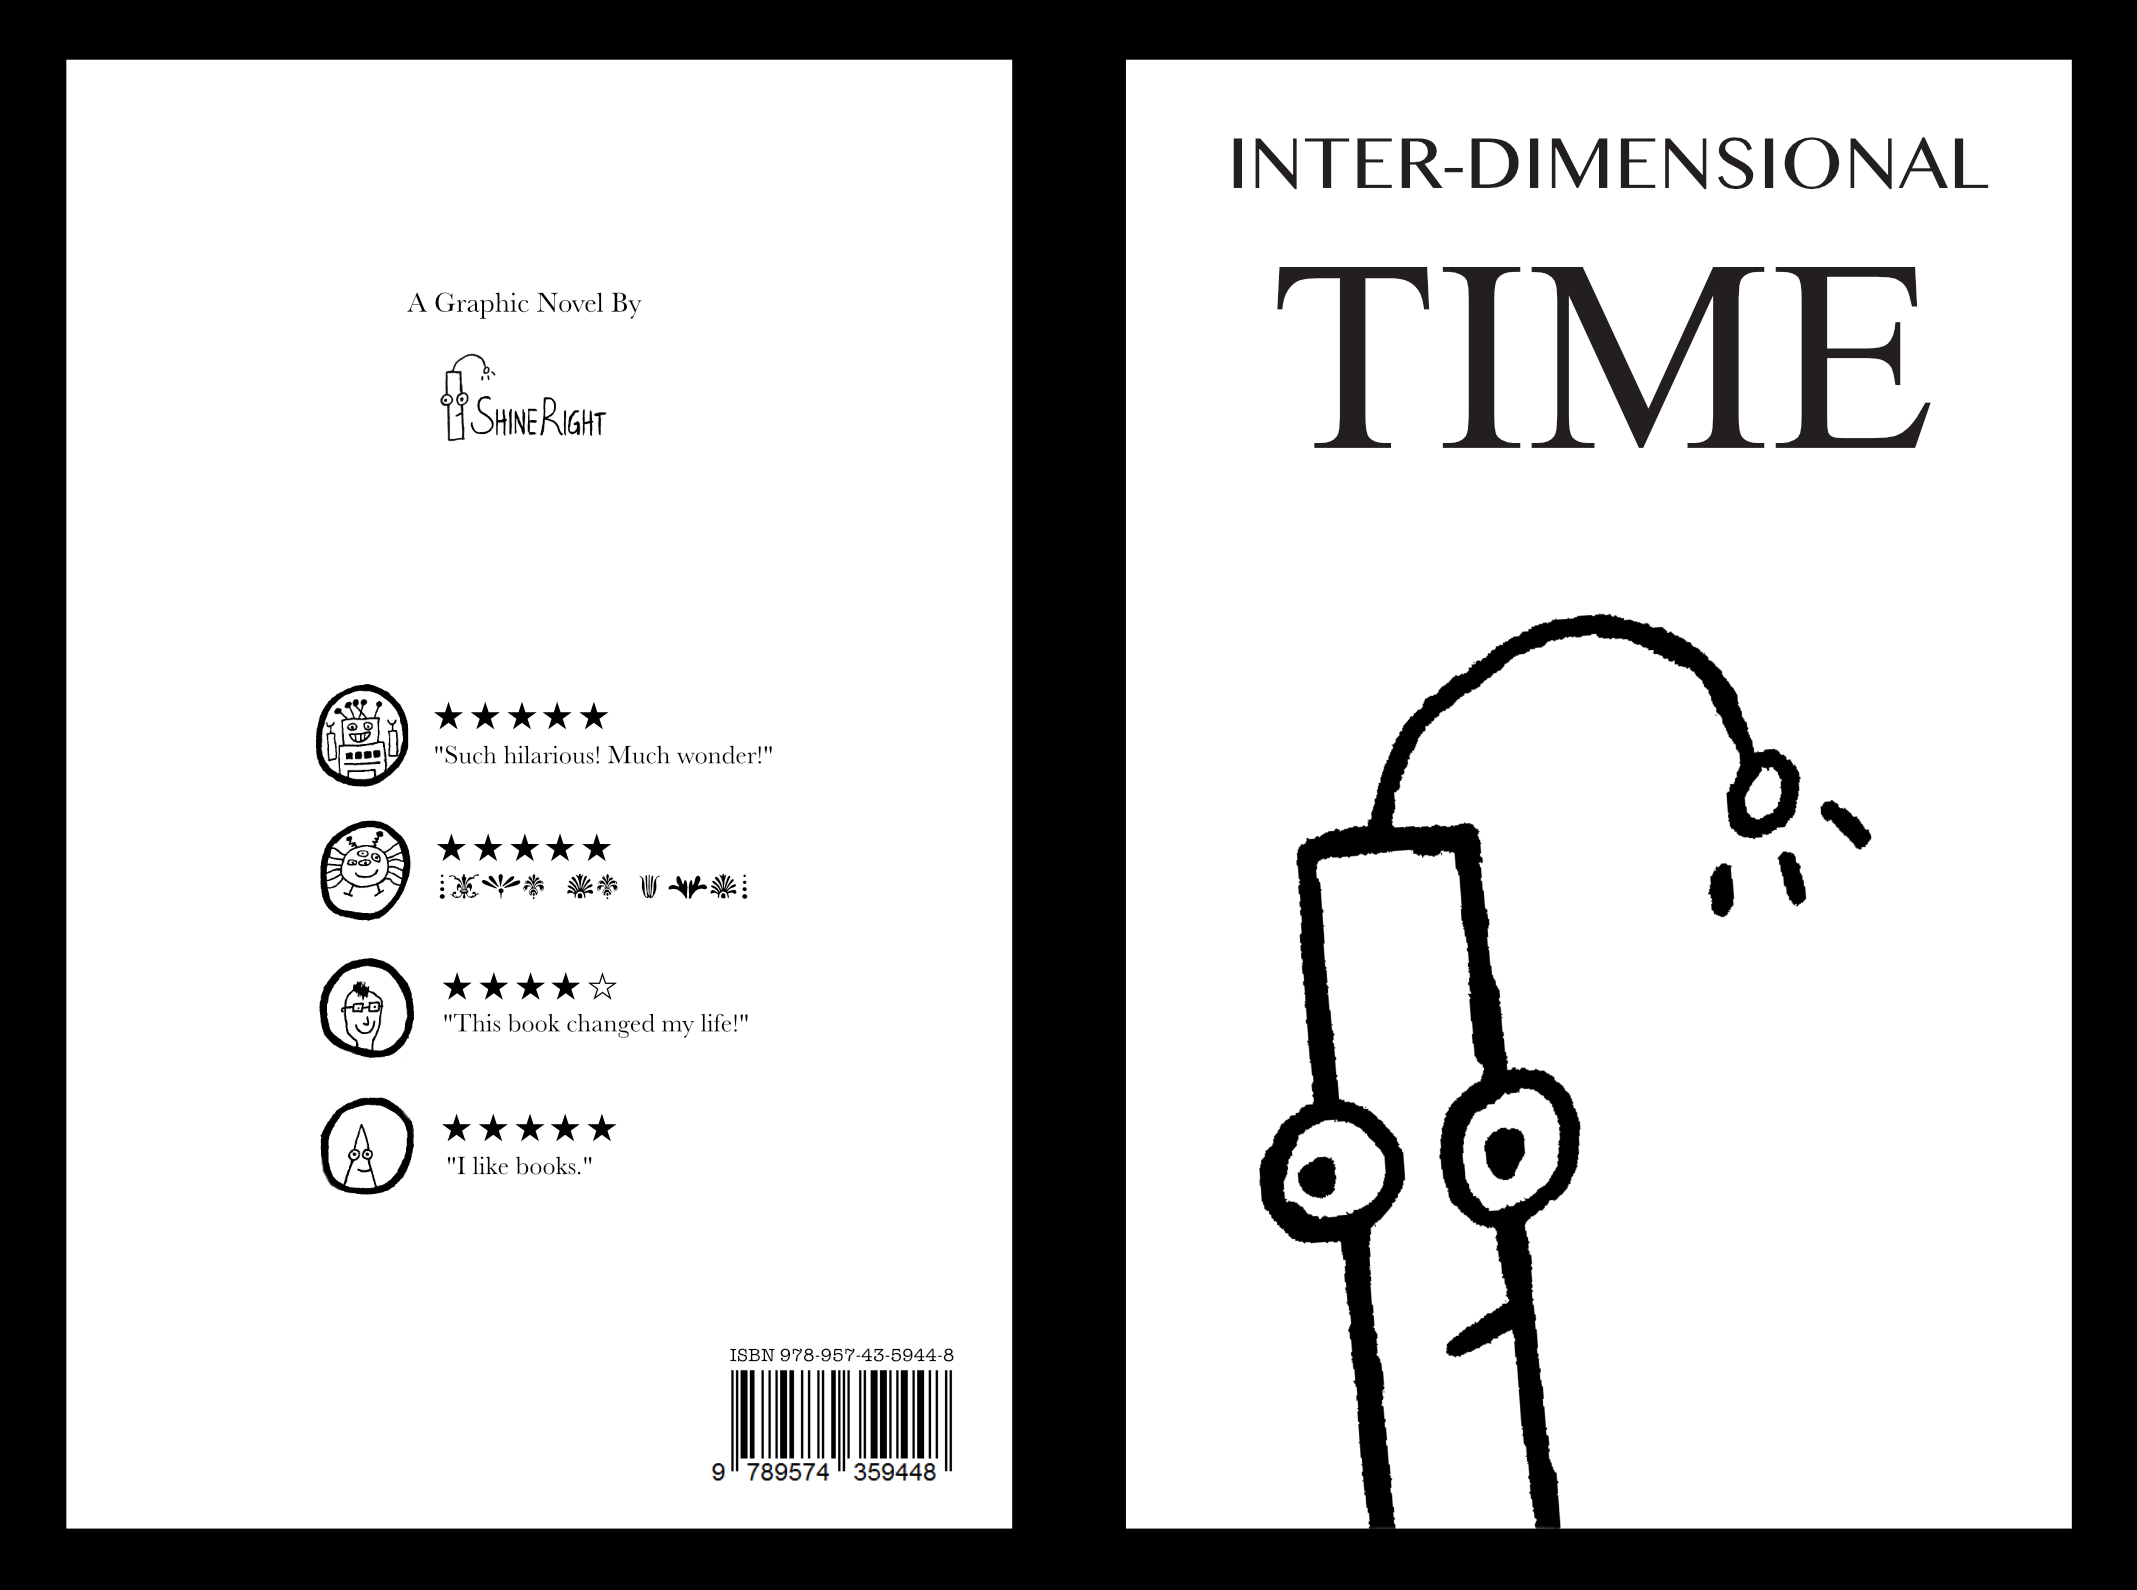 Inter-dimensional Time